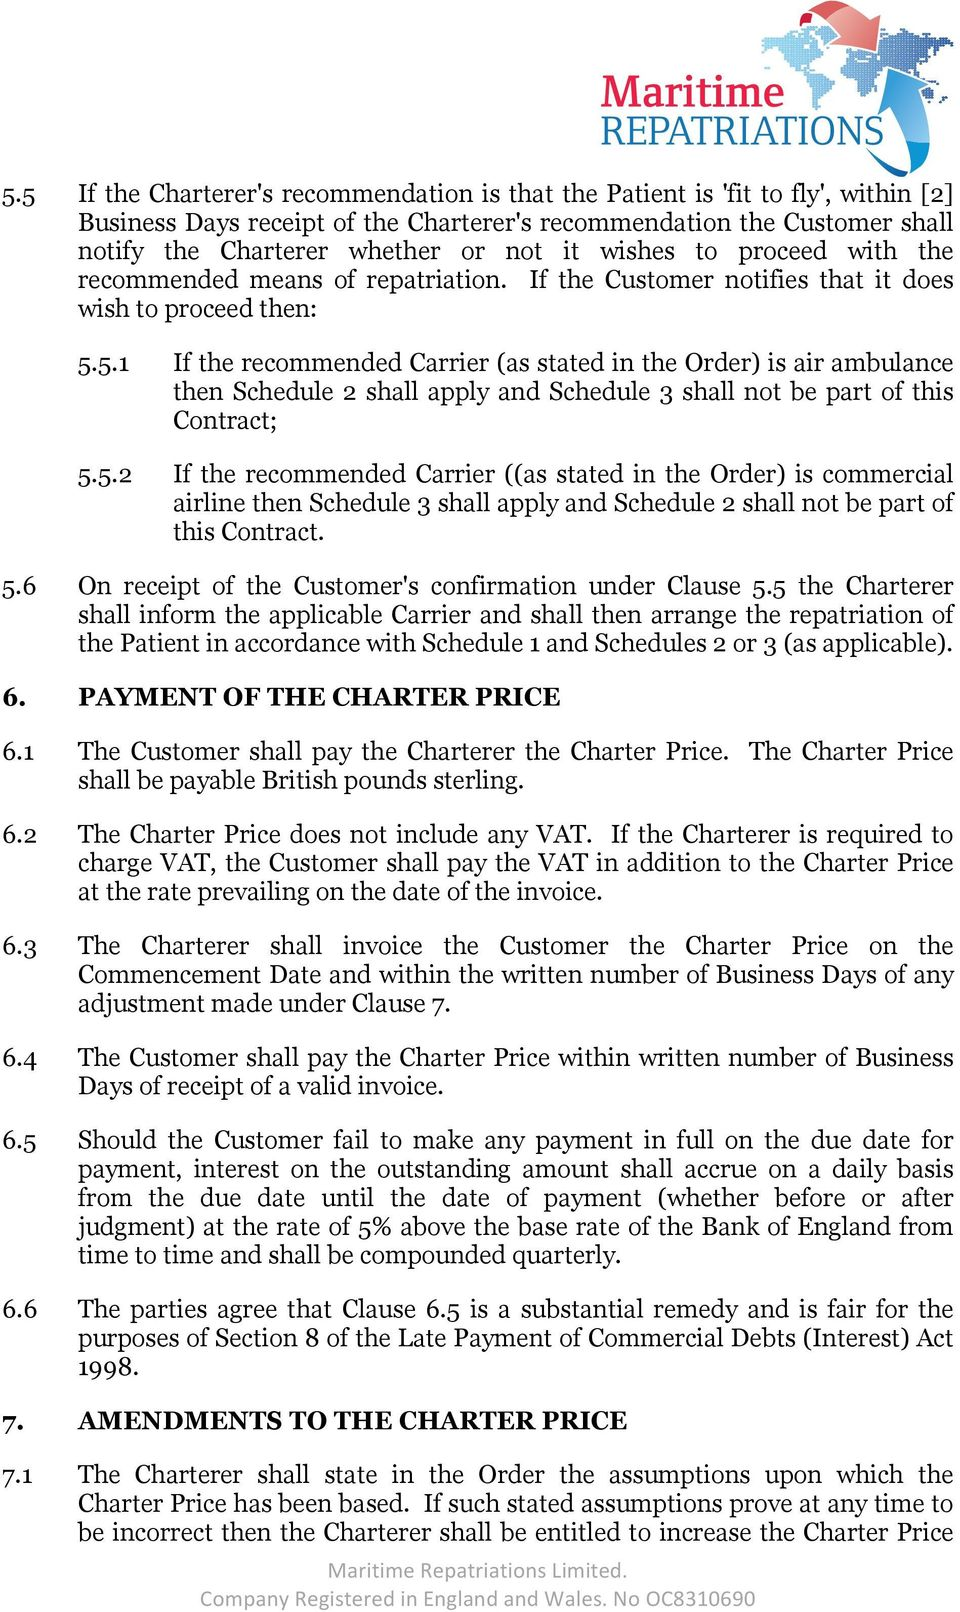 5.1 If the recommended Carrier (as stated in the Order) is air ambulance then Schedule 2 shall apply and Schedule 3 shall not be part of this Contract; 5.5.2 If the recommended Carrier ((as stated in the Order) is commercial airline then Schedule 3 shall apply and Schedule 2 shall not be part of this Contract.